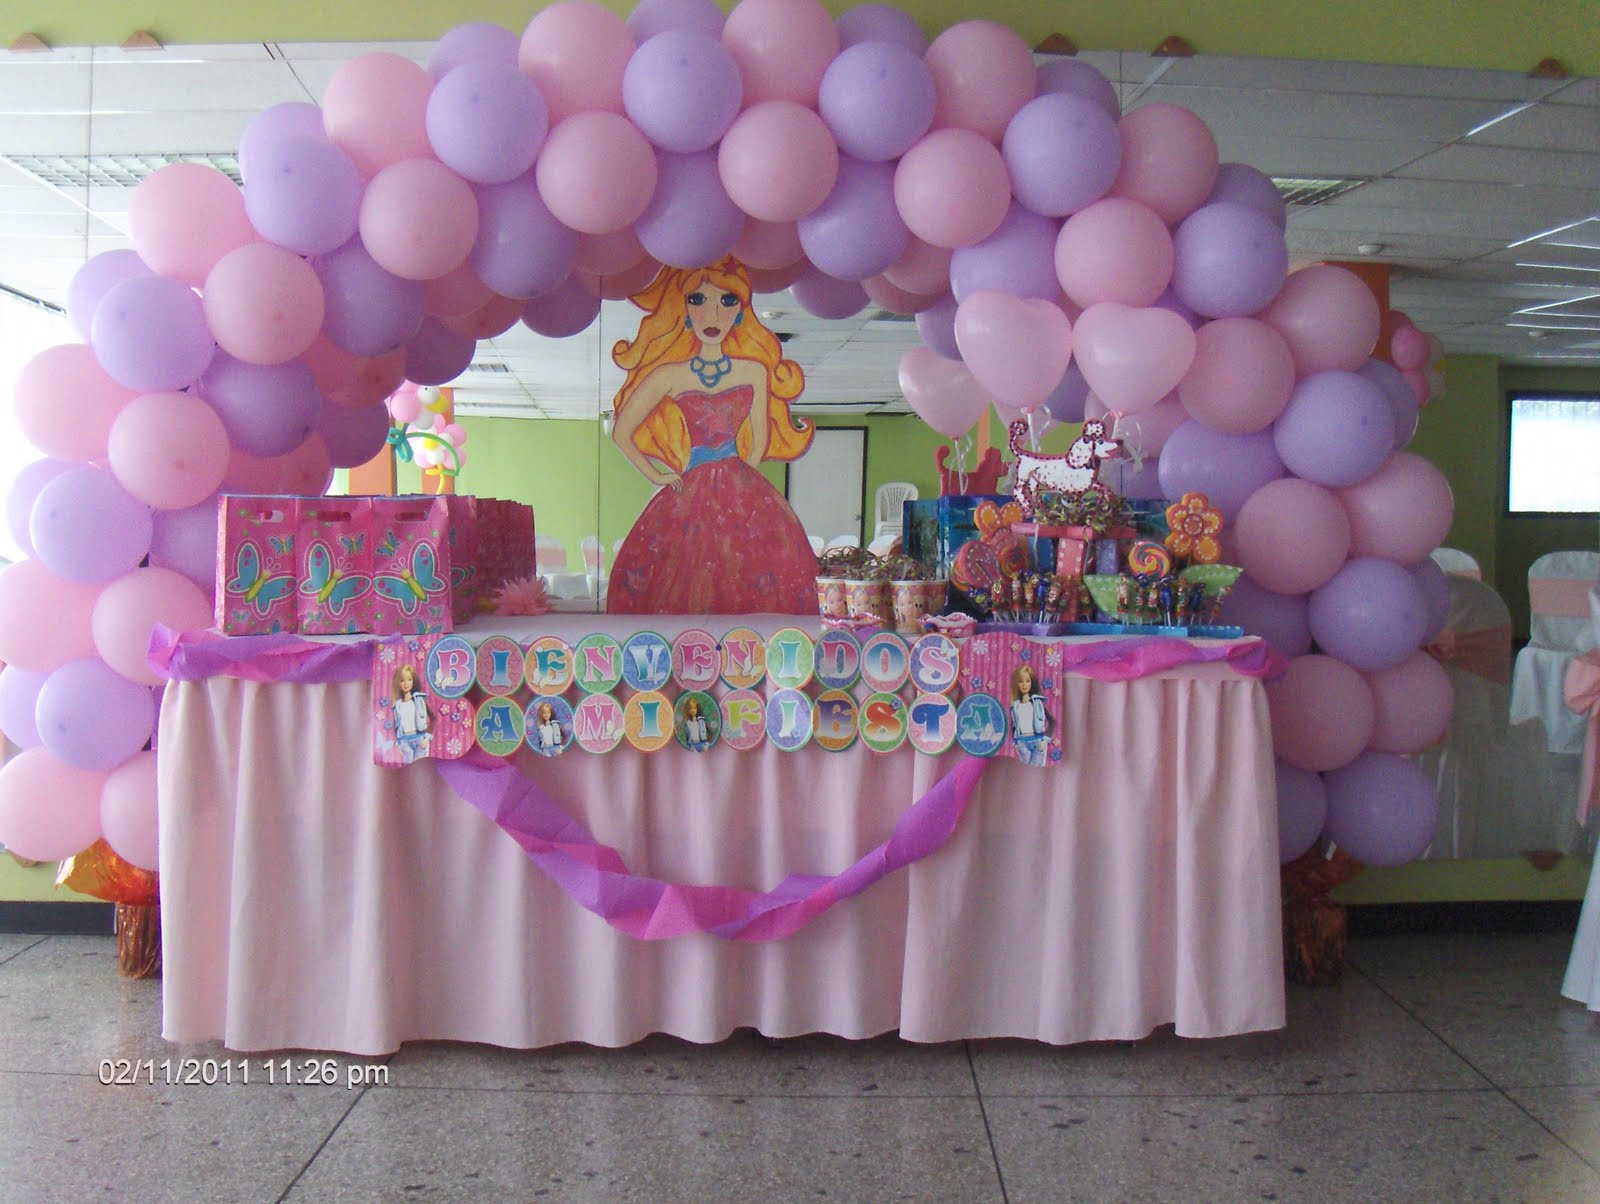 Globos helium fiestas infantiles for Fotos de decoraciones